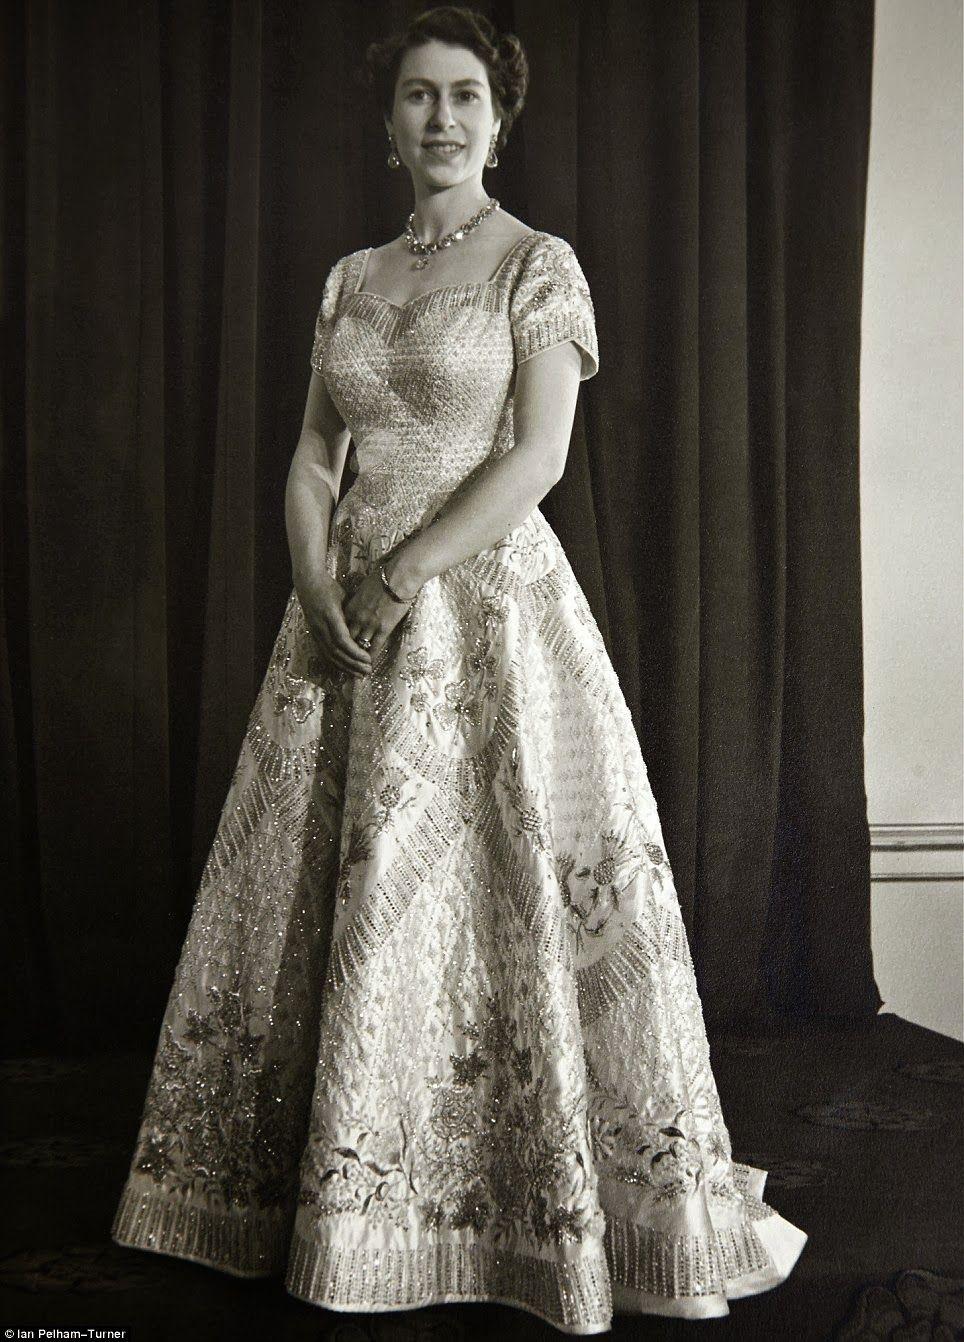 The Queen in her coronation gown that was designed by Sir